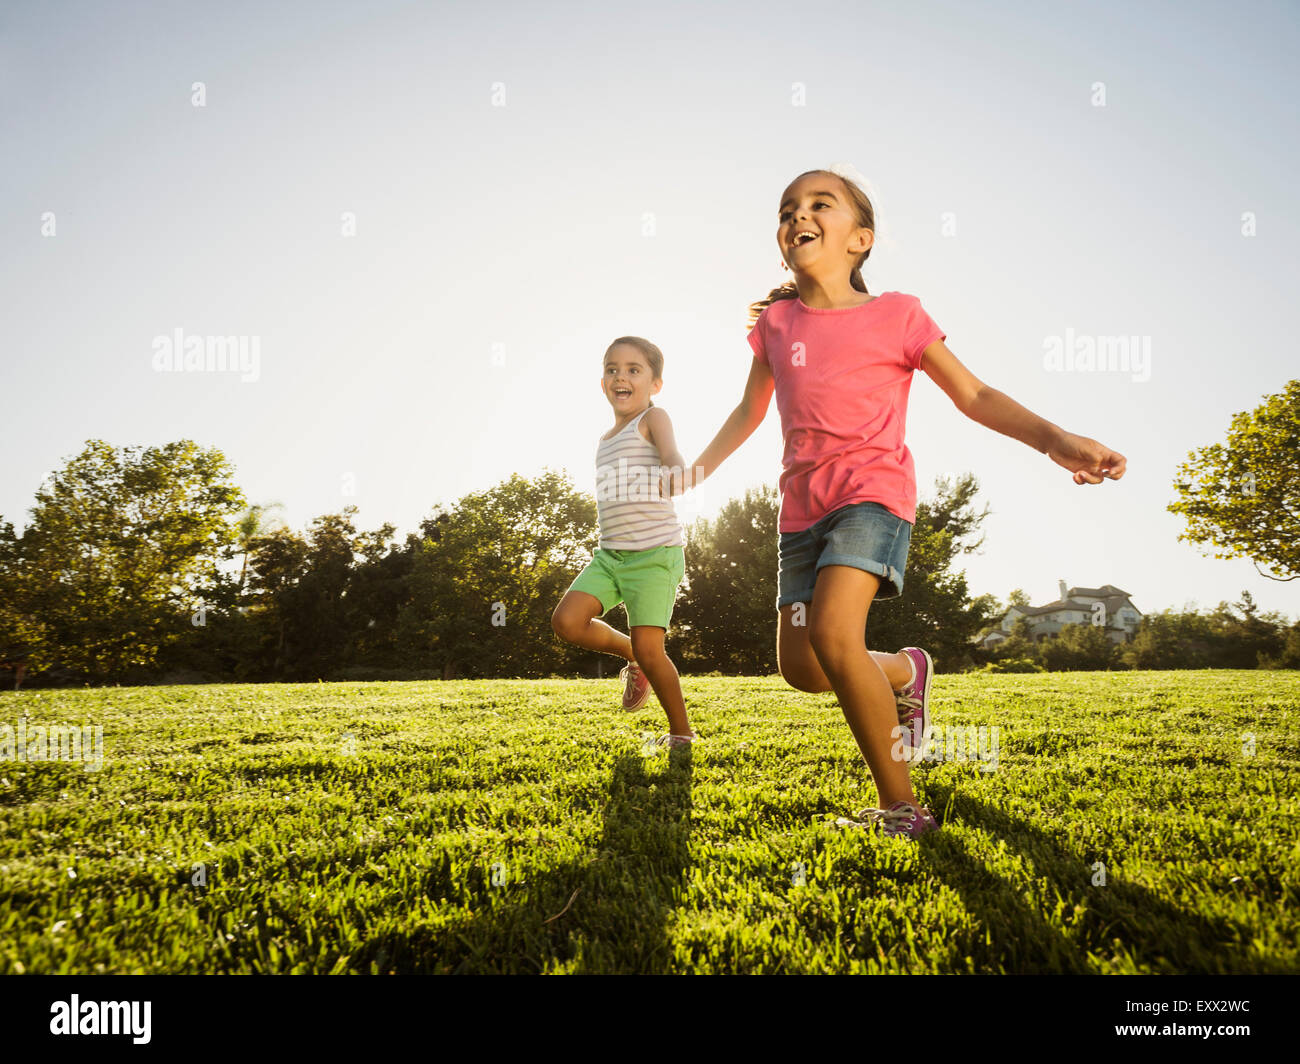 Sisters (6-7, 8-9) playing in park - Stock Image